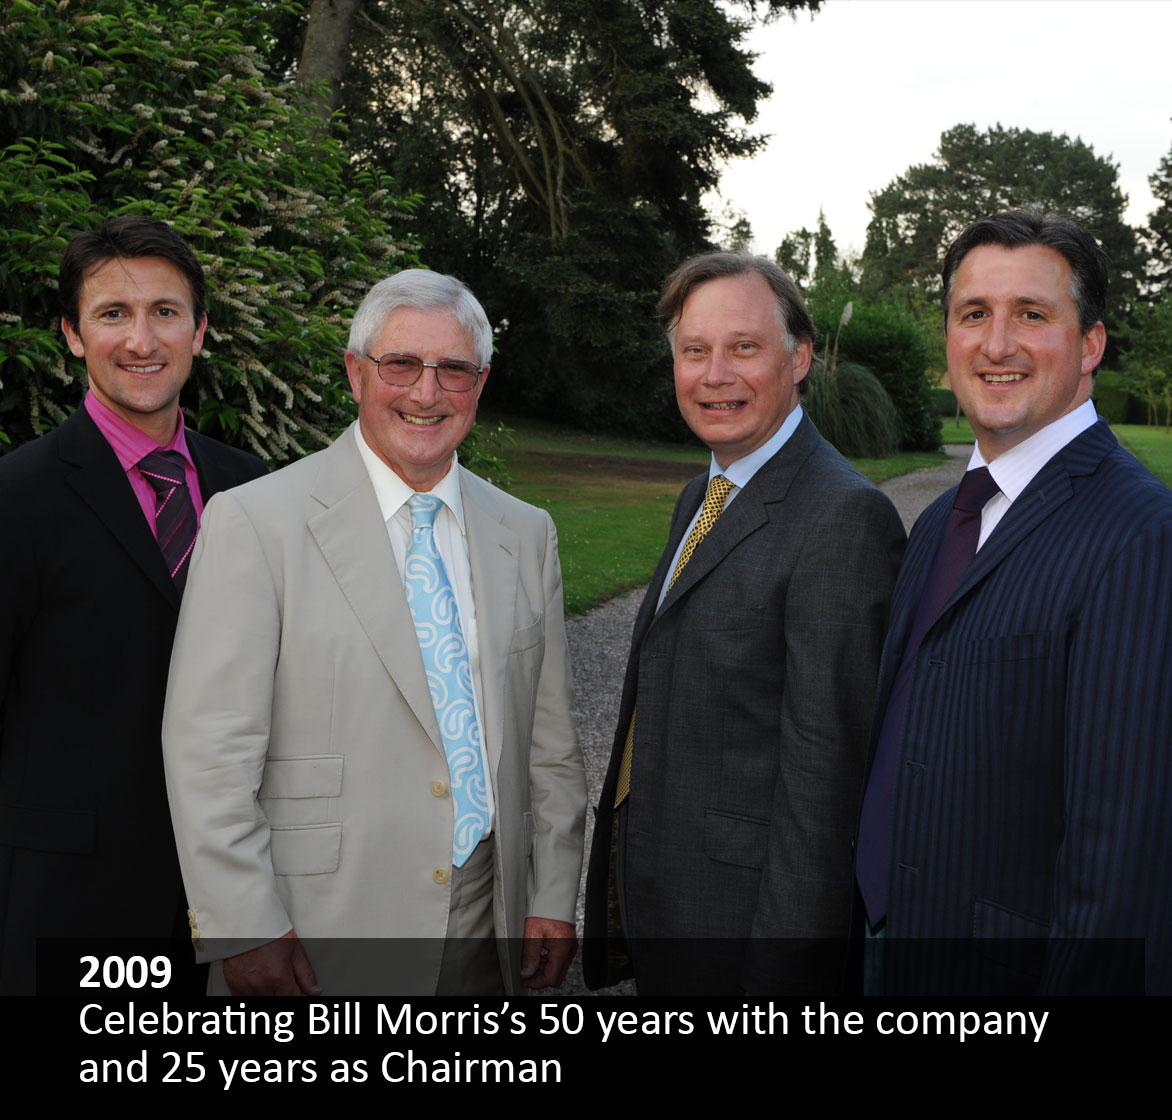 Celebrating Bill Morris's 50 years with the company